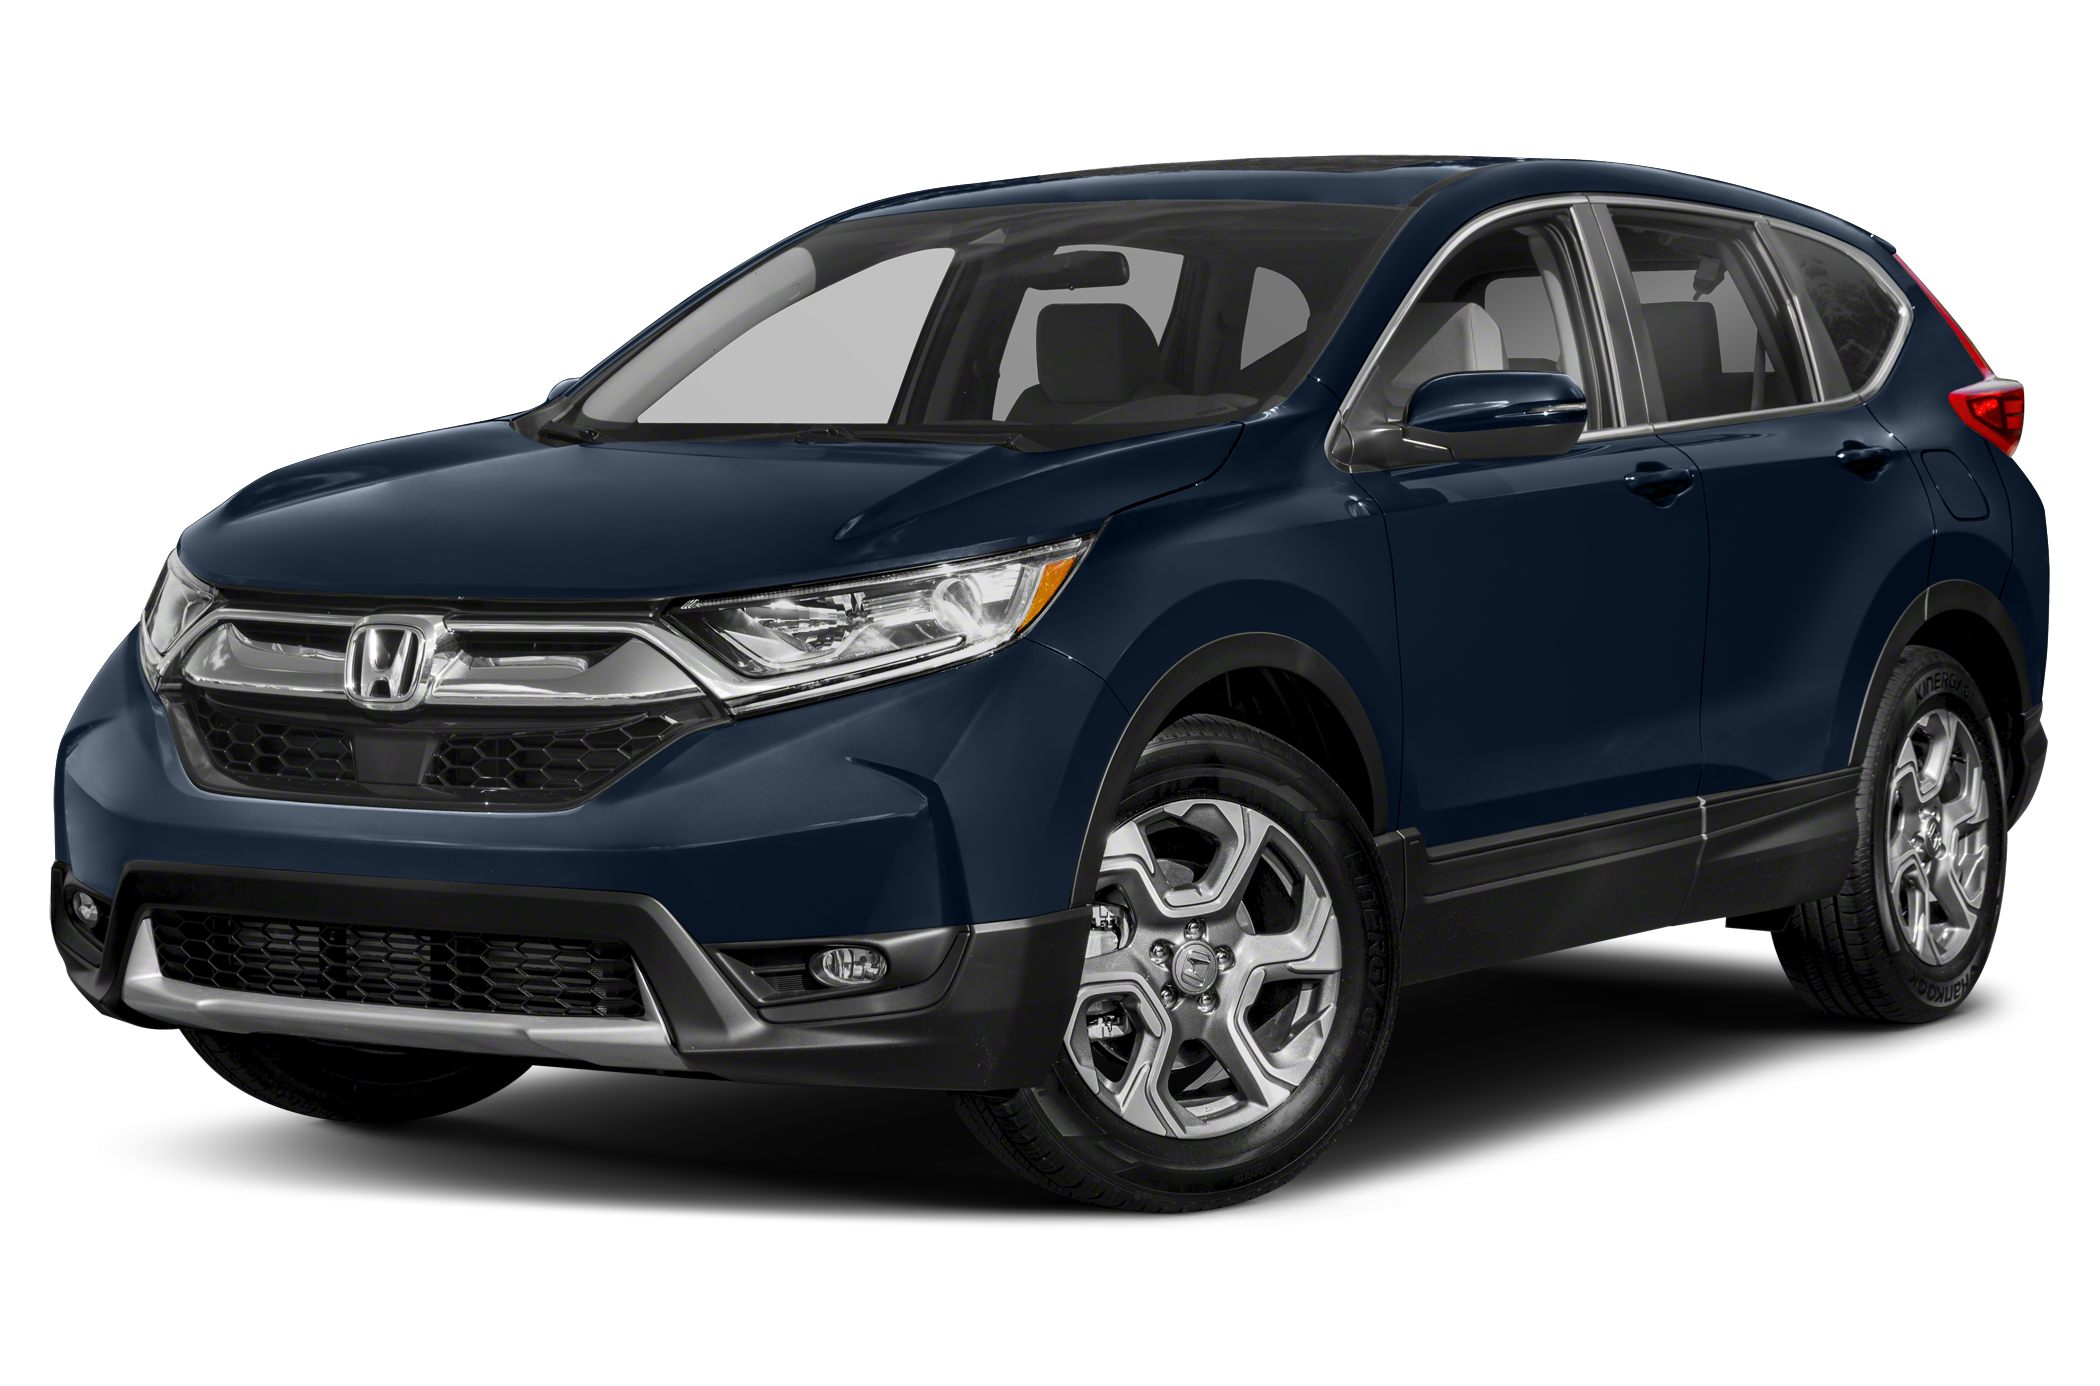 Mitsubishi Outlander PHEV US launch delayed over battery ...